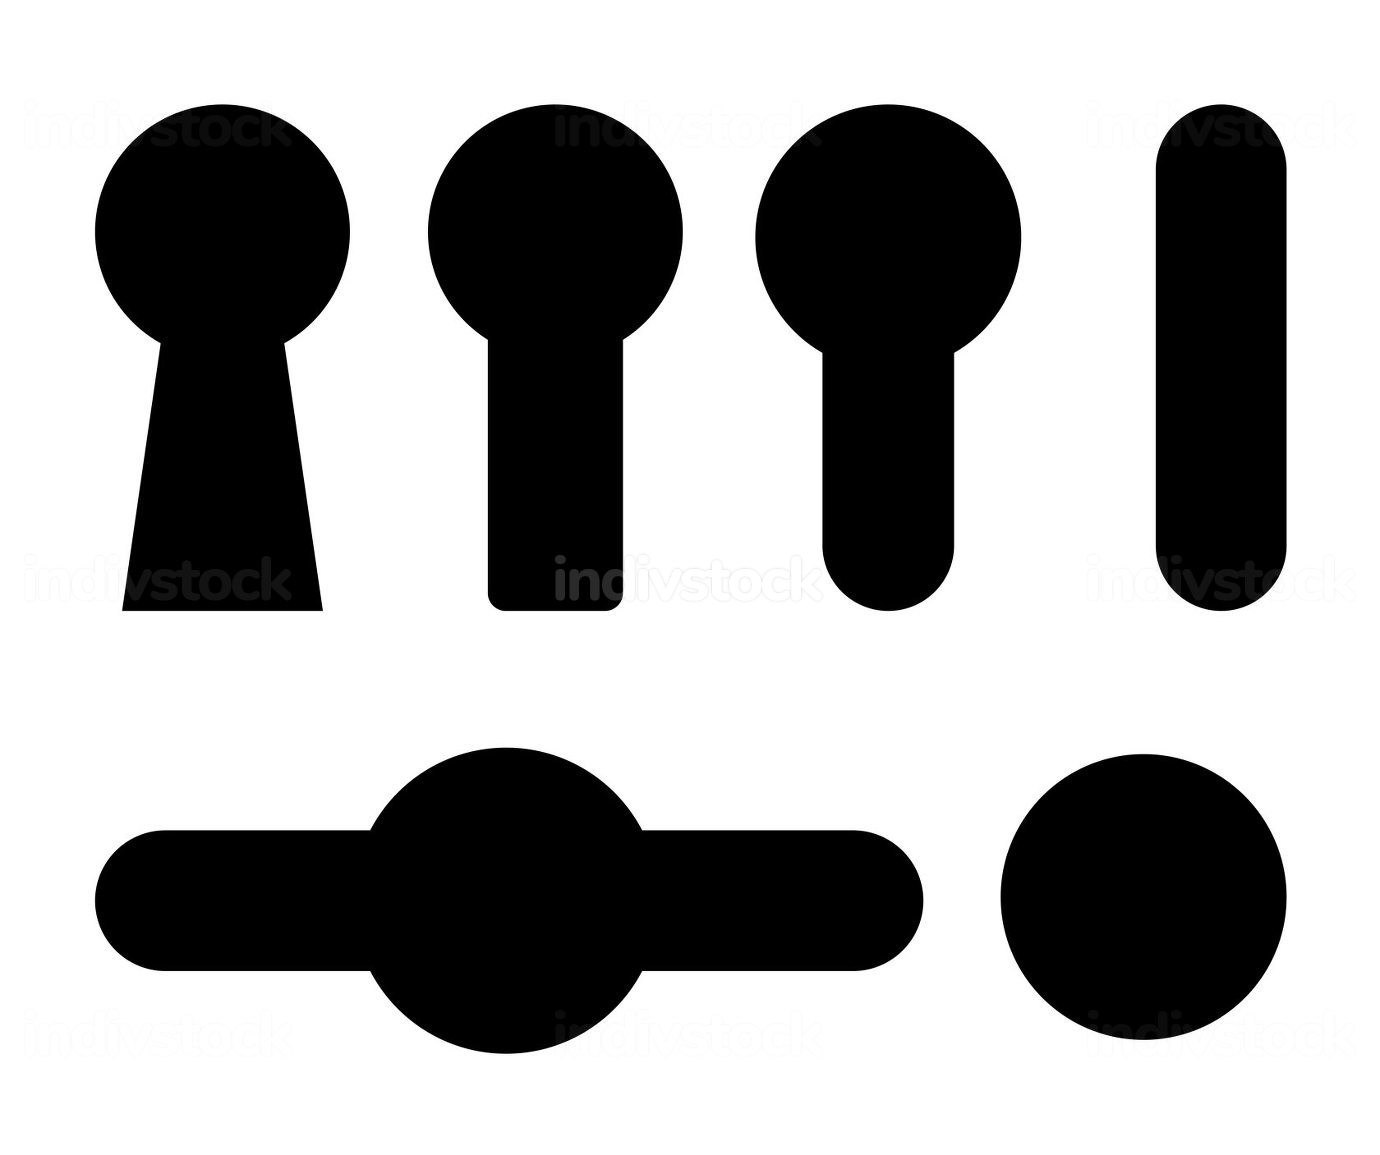 Keyhole icon set. Black shapes collections with security symbols